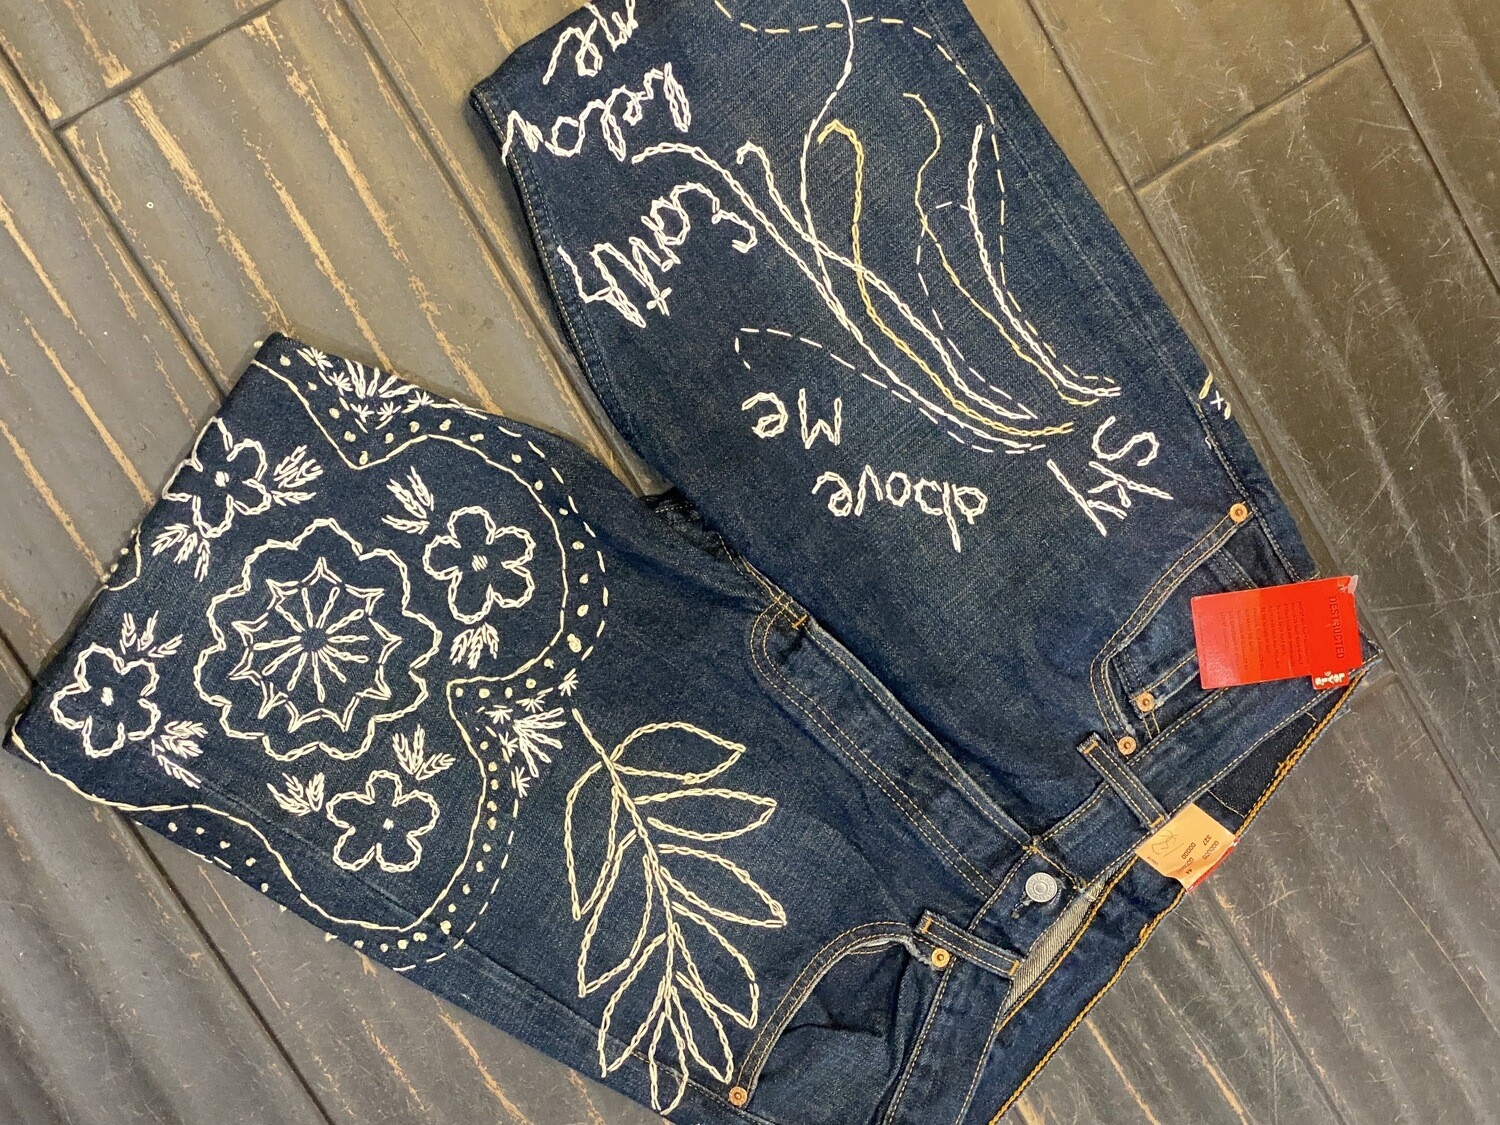 ESIAAM Levi's 501 Hand-Embroidered Jeans 32 x 32